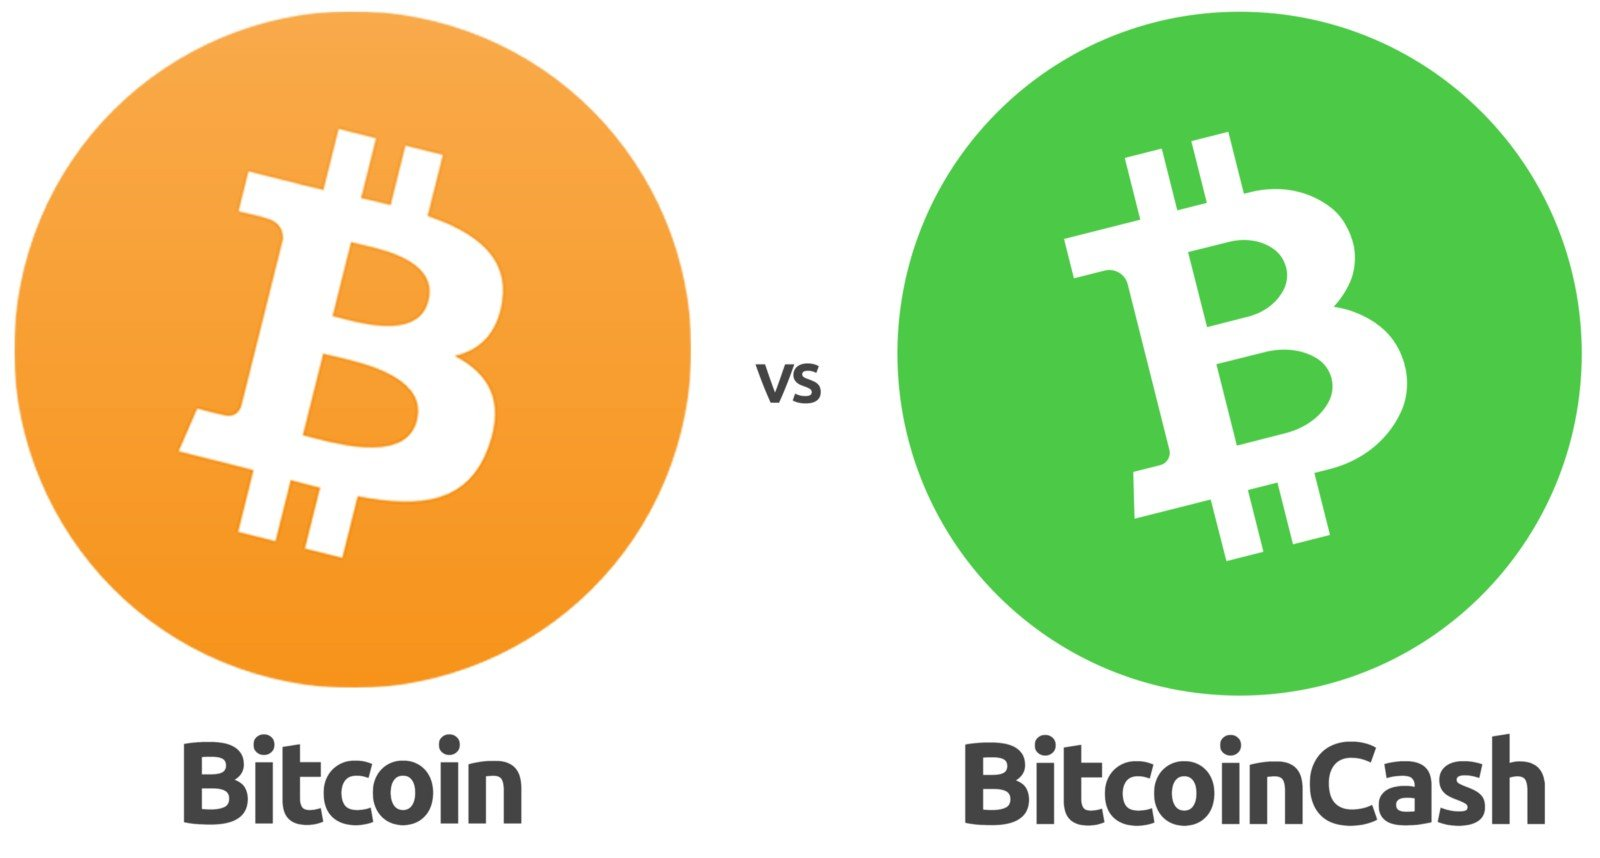 A comparison between Bitcoin and Bitcoin Cash